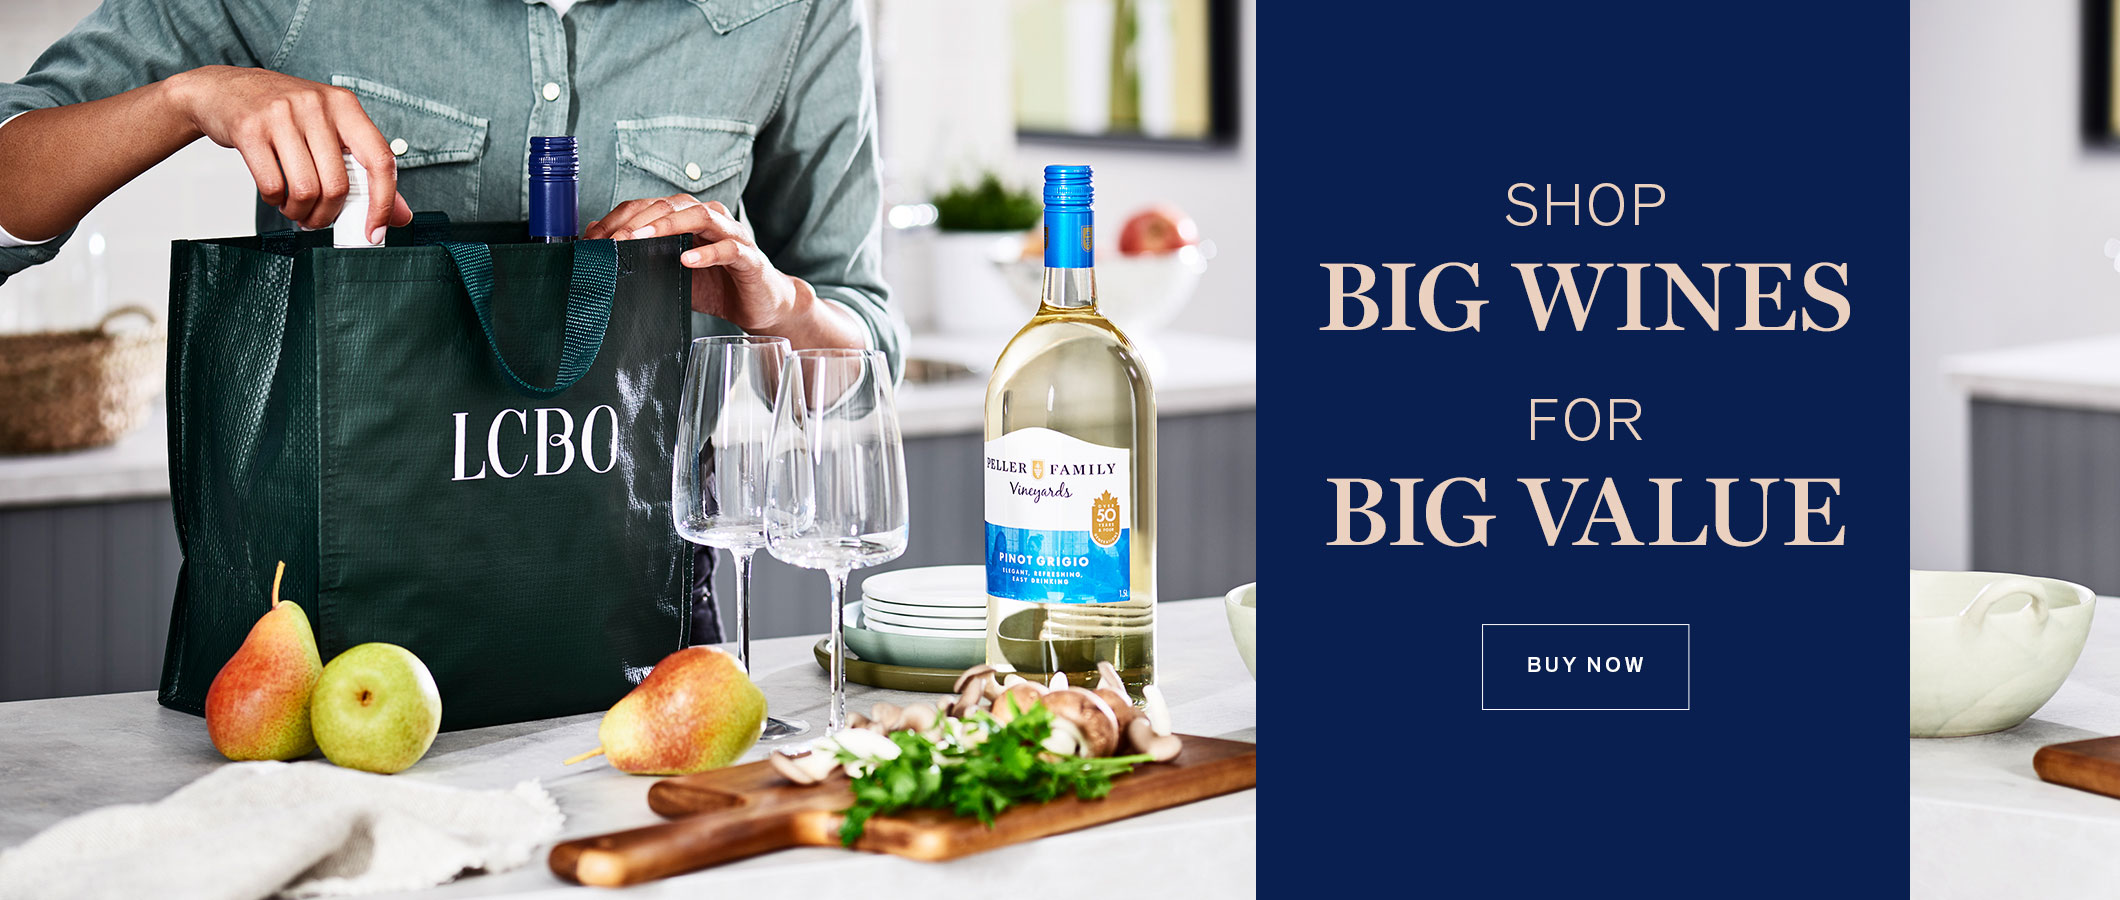 SHOP BIG WINES FOR BIG VALUE